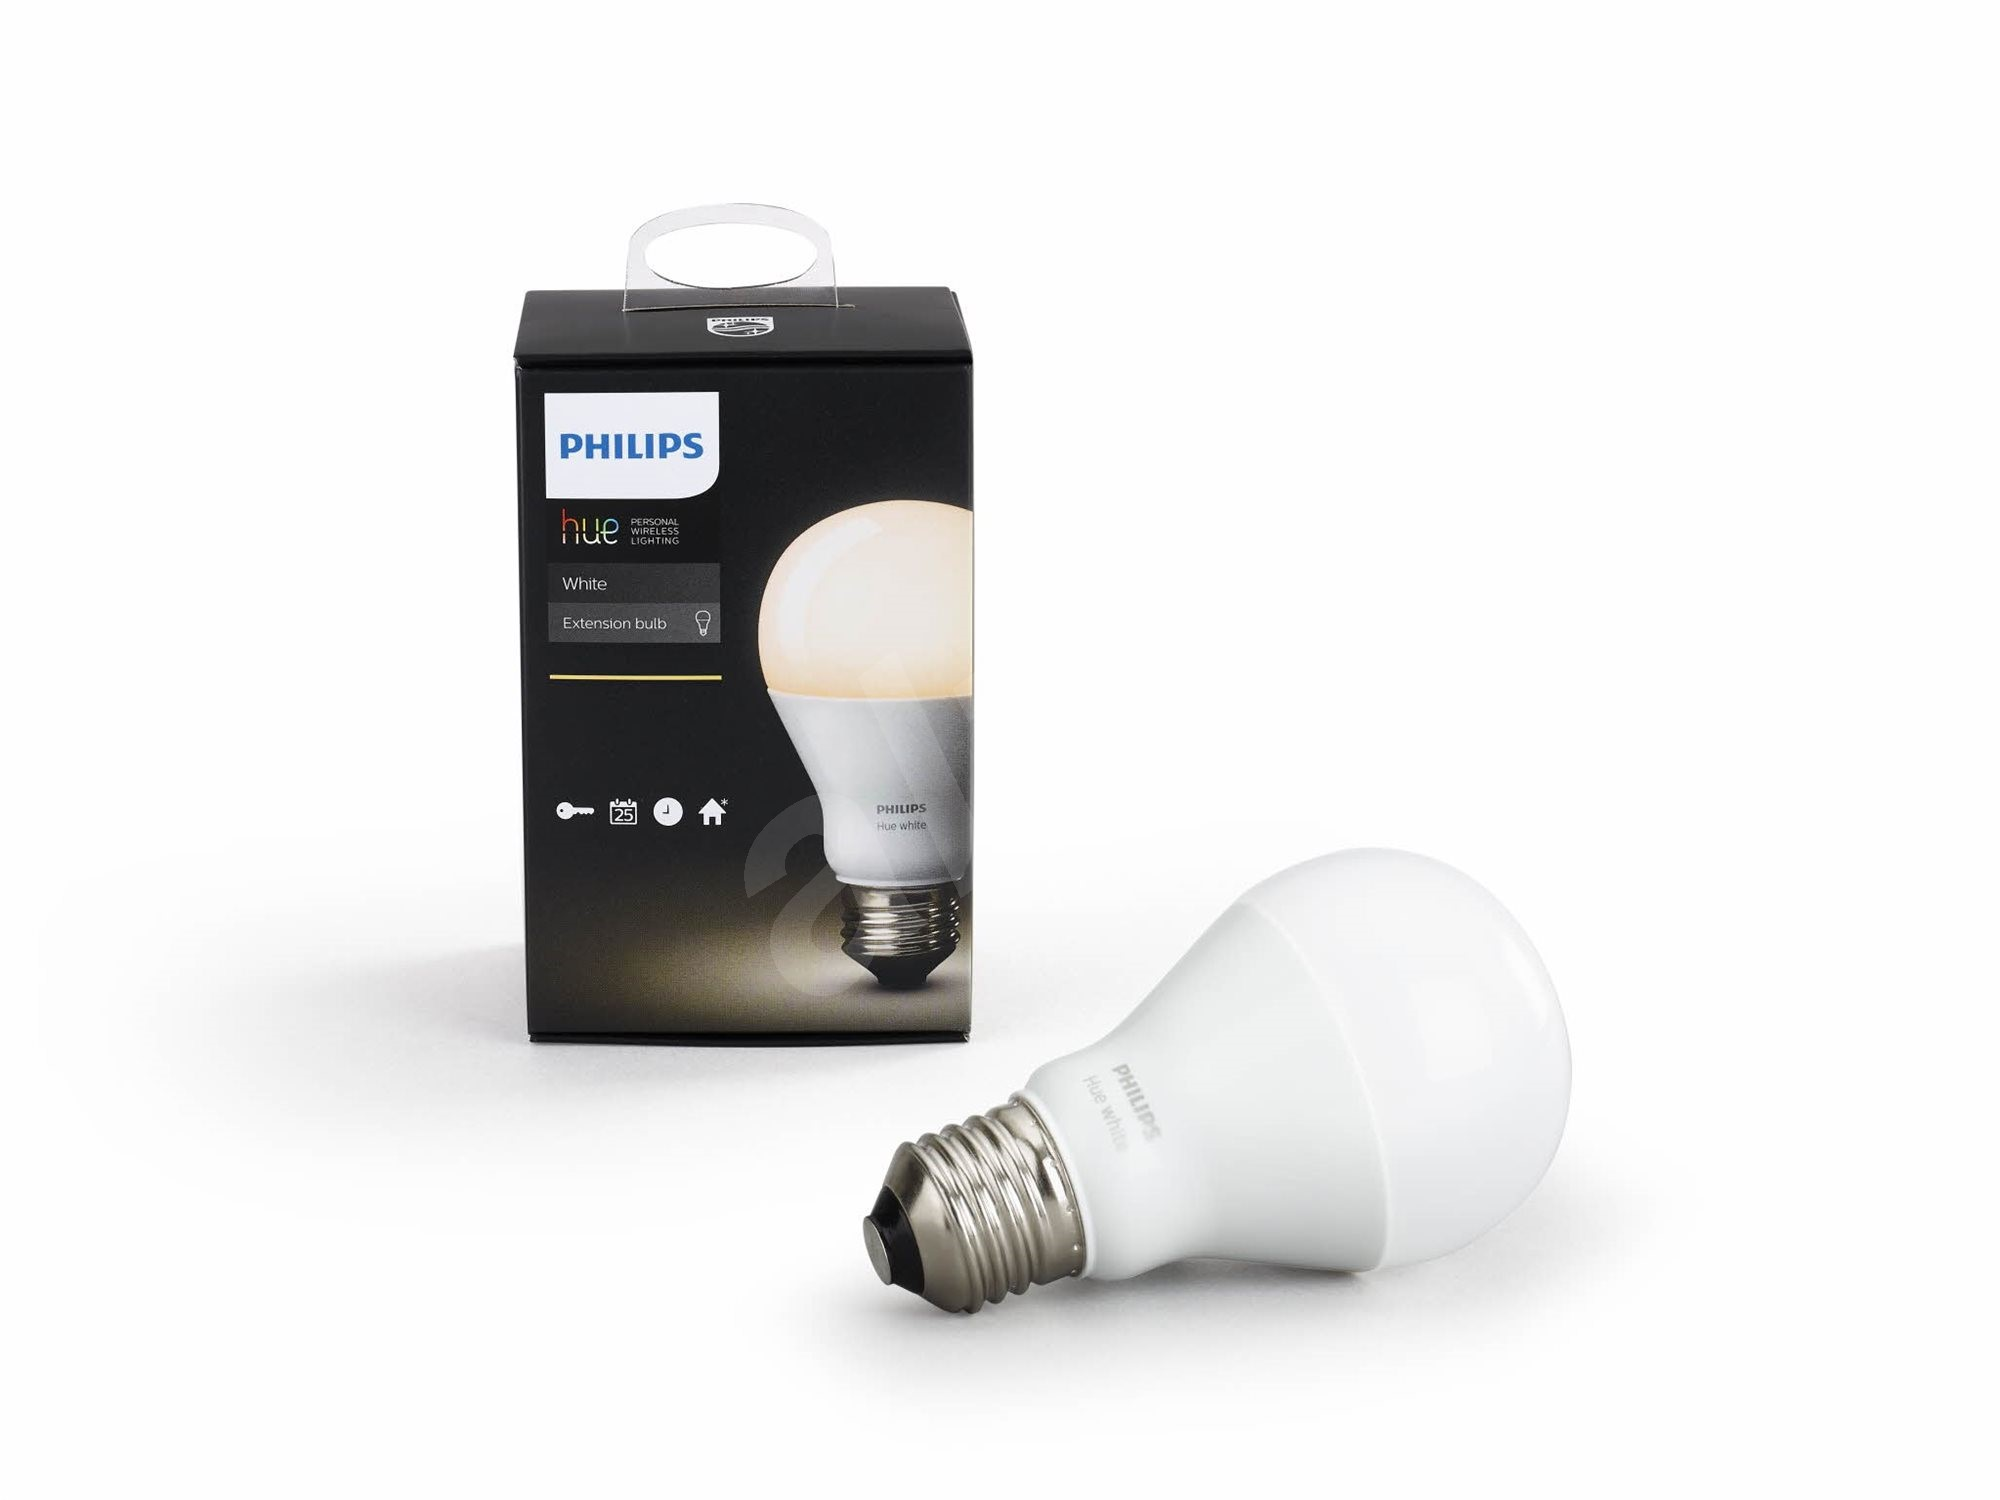 philips hue white 9 5w e27 led bulb. Black Bedroom Furniture Sets. Home Design Ideas